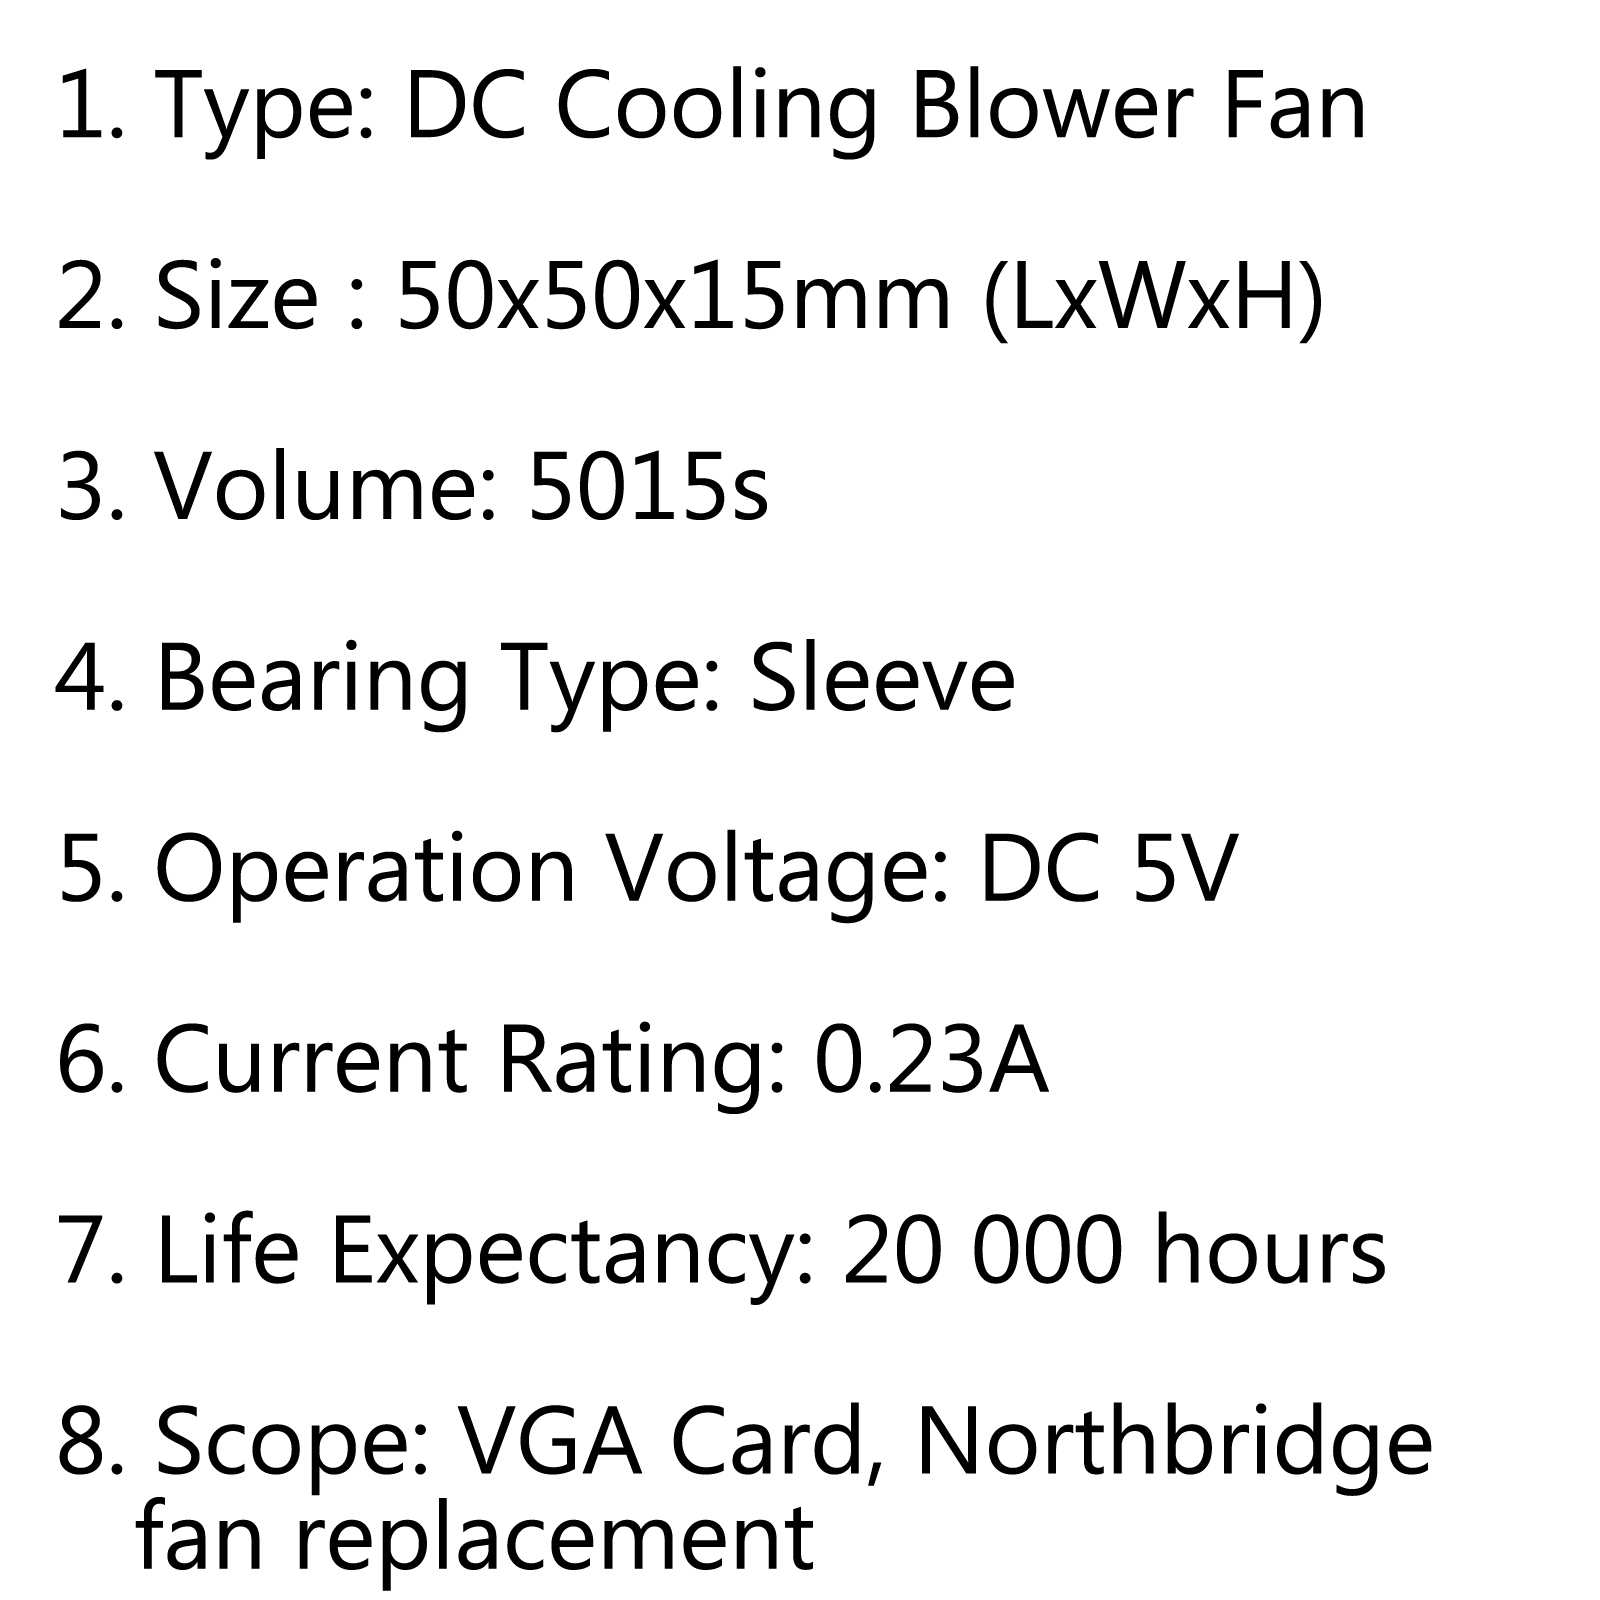 Brushless Dc Cooling Blower Fan 5v S 50x50x15mm 0 23a